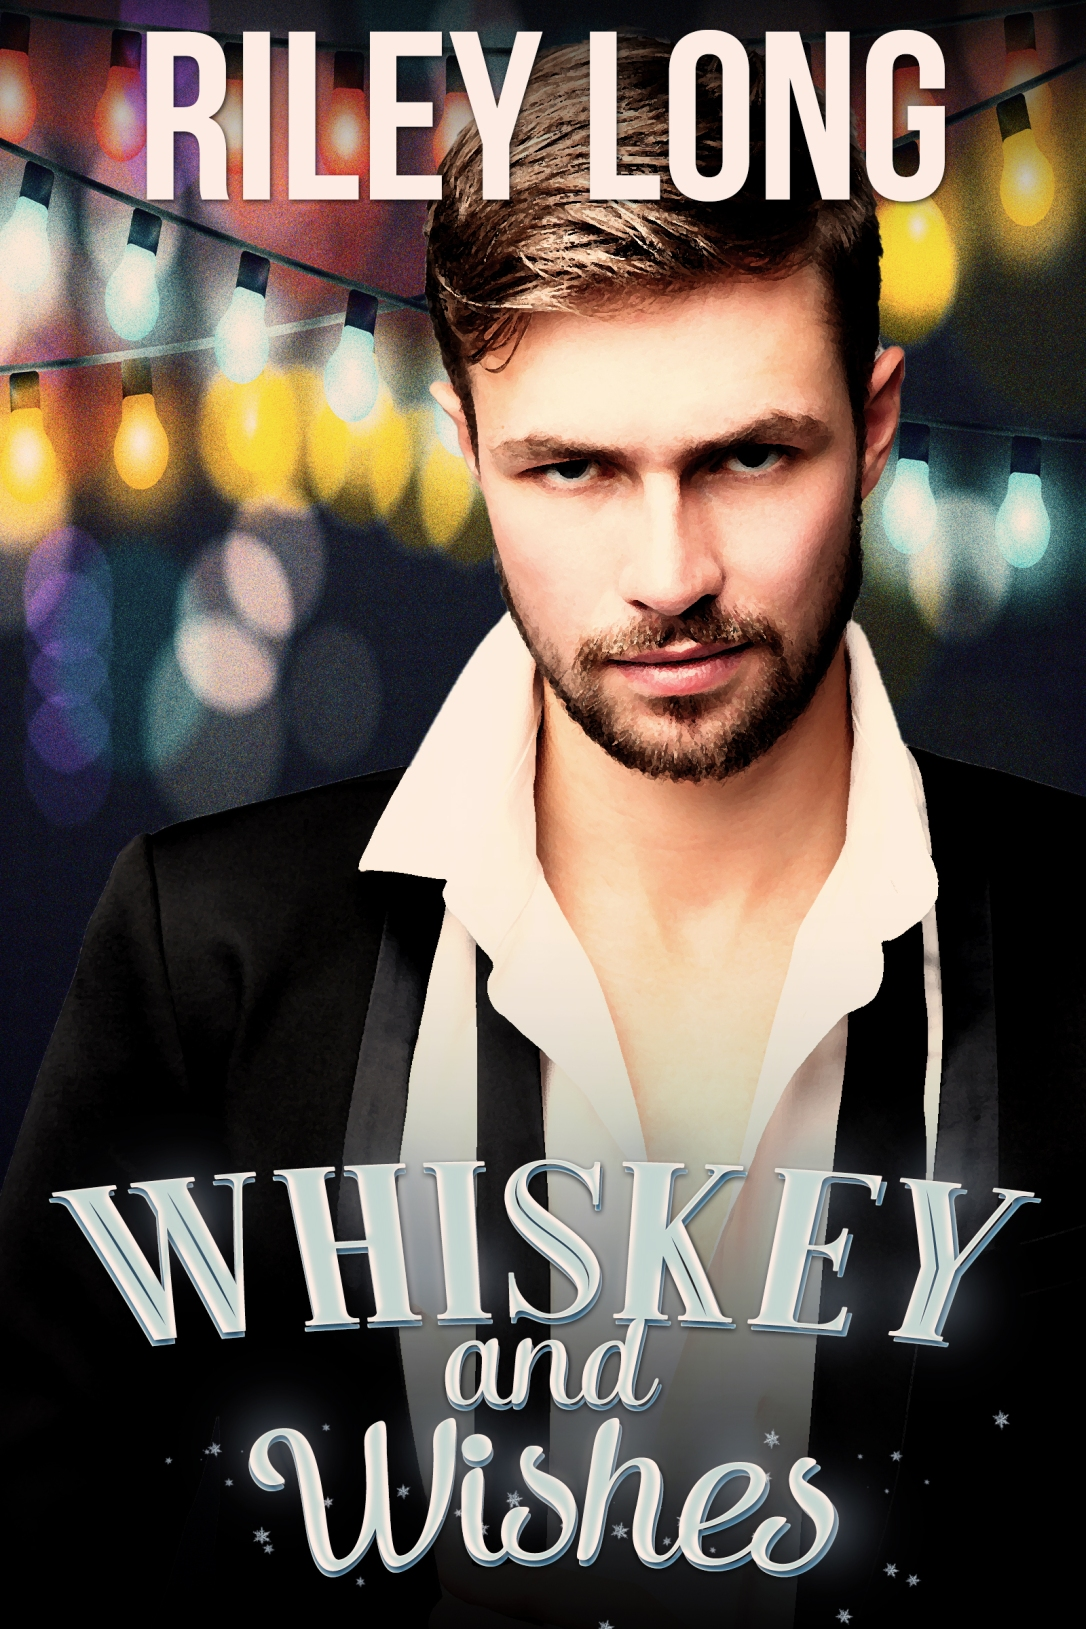 WhiskeyWishes (1)